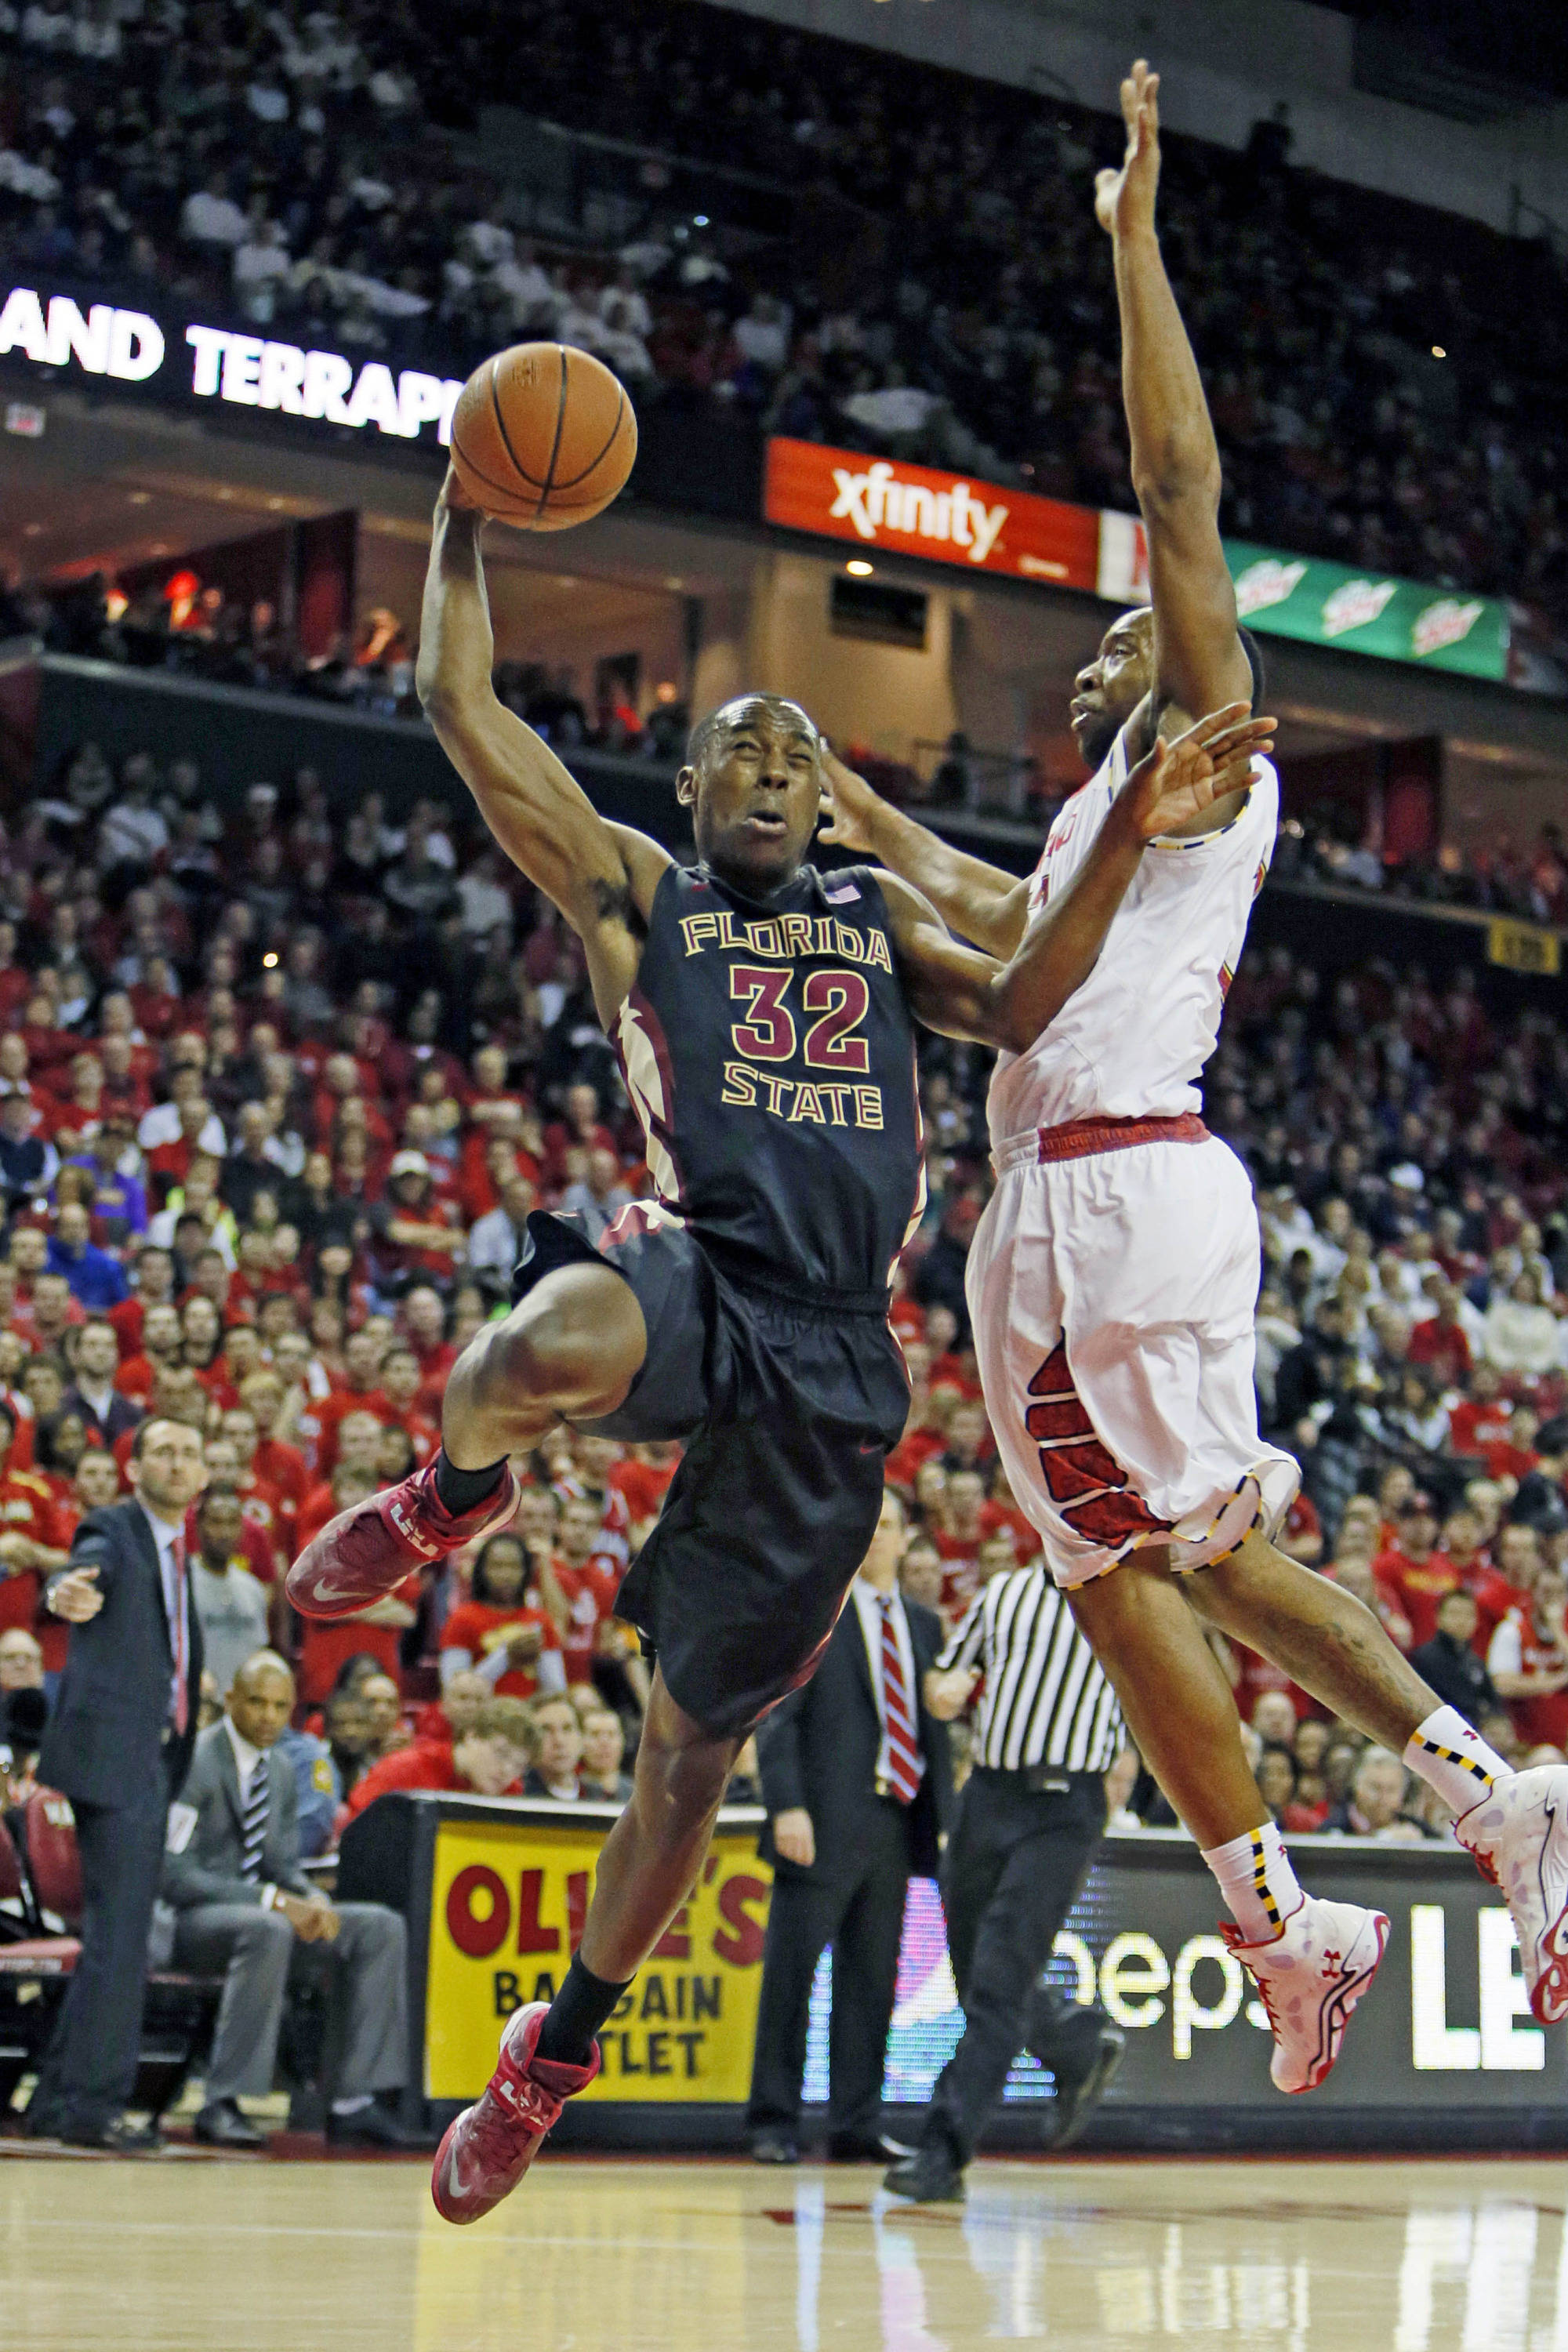 Feb 8, 2014; College Park, MD, USA; Florida State Seminoles guard Montay Brandon (32) has his shot blocked by Maryland Terrapins forward Dez Wells (32) at Comcast Center. Mandatory Credit: Mitch Stringer-USA TODAY Sports